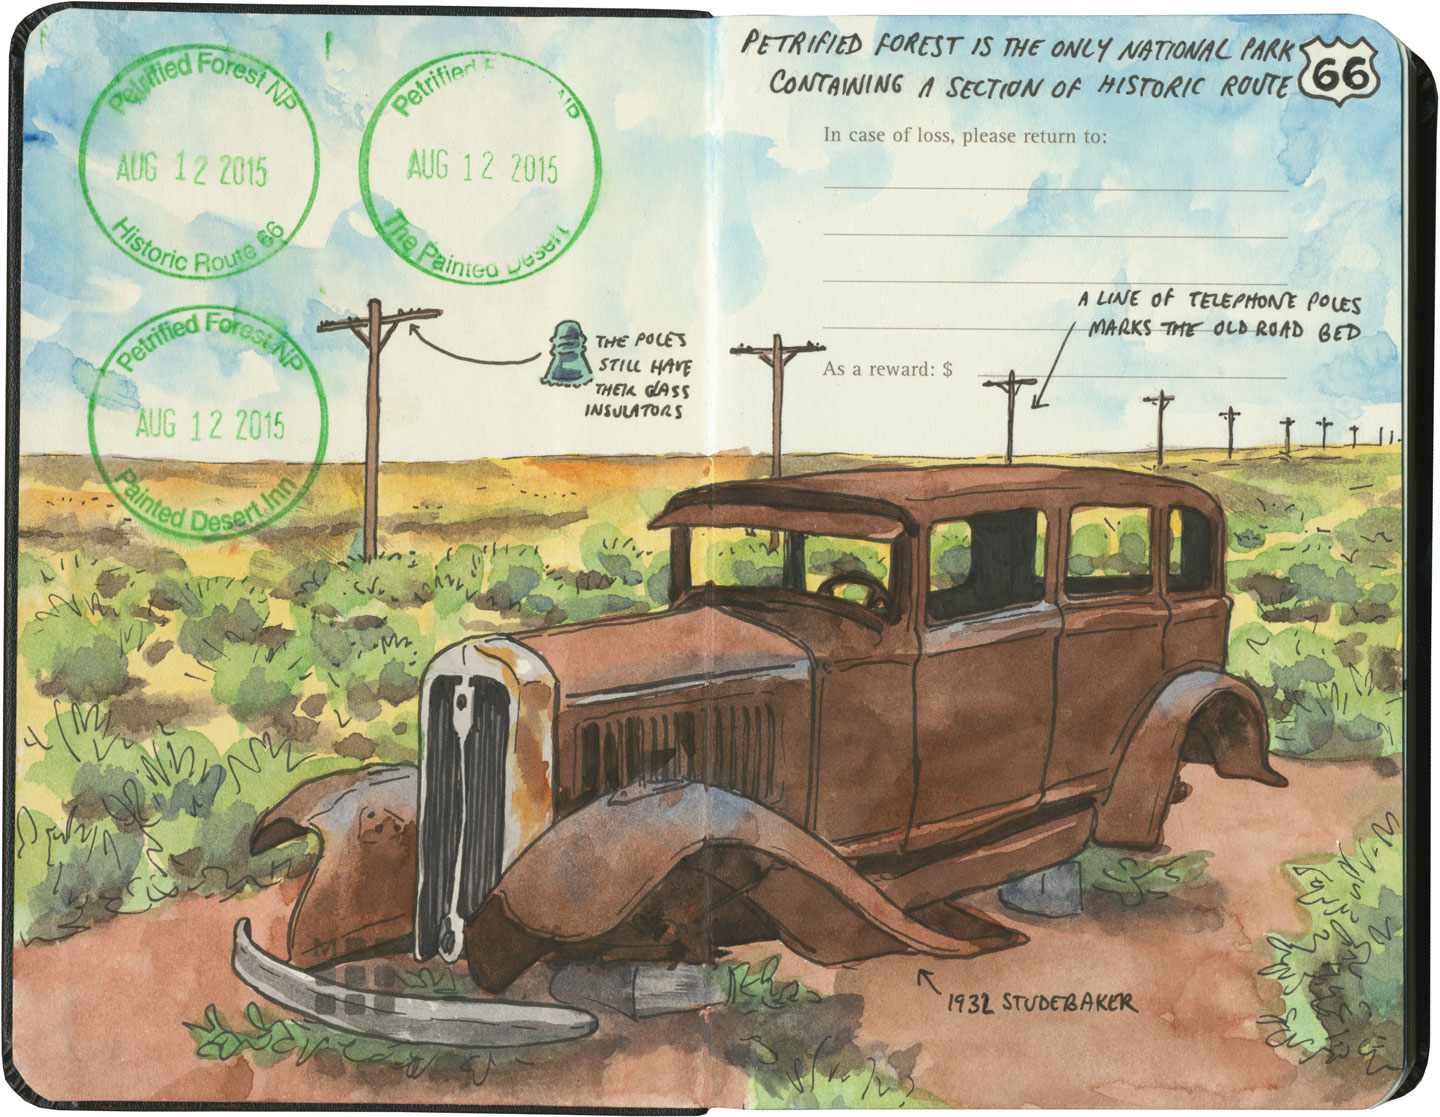 Petrified Forest National Park and Route 66 sketch by Chandler O'Leary